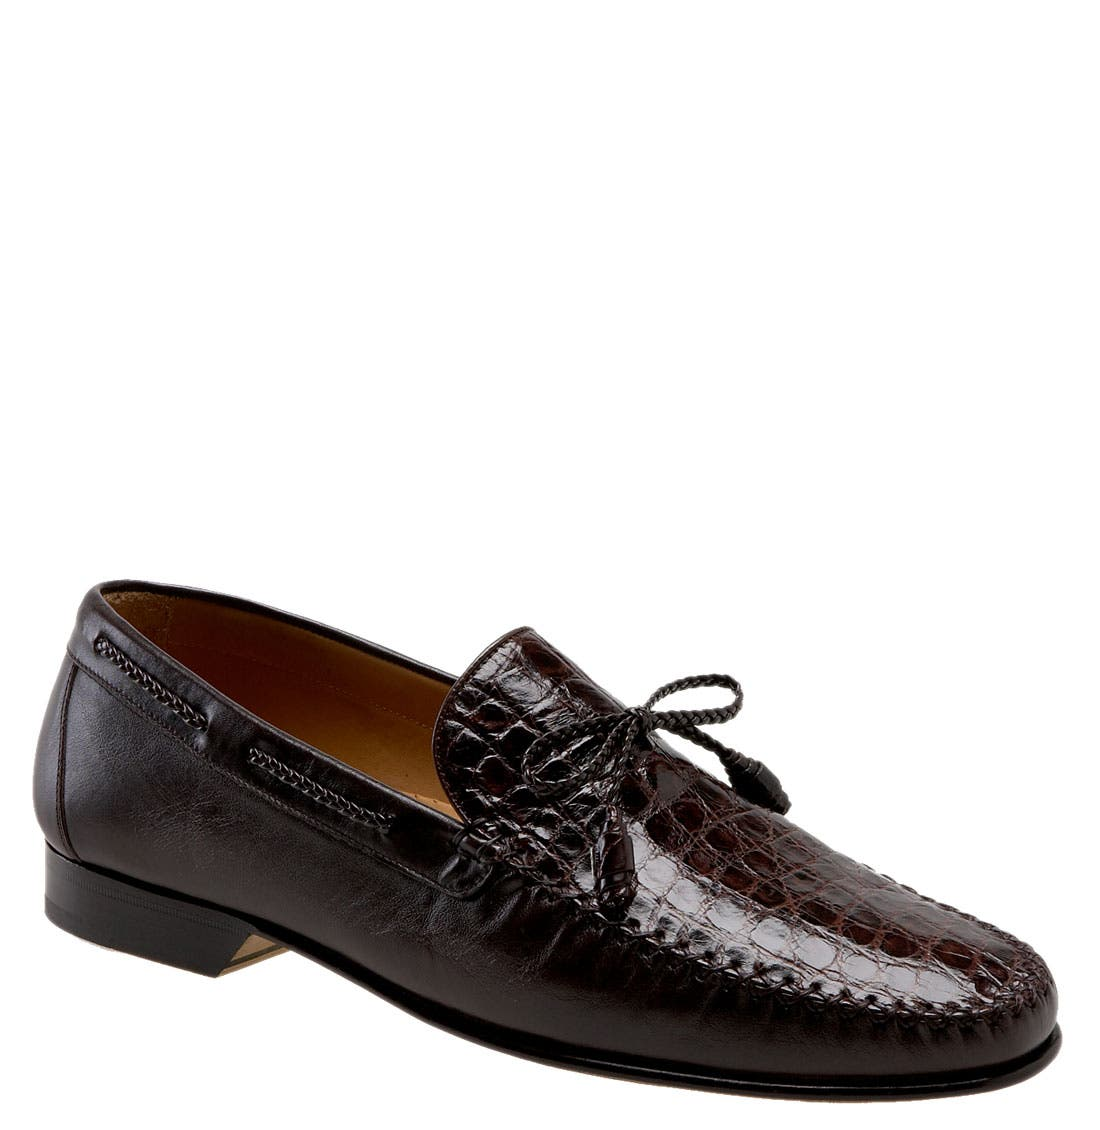 Alternate Image 1 Selected - Mezlan 'Bonds' Loafer